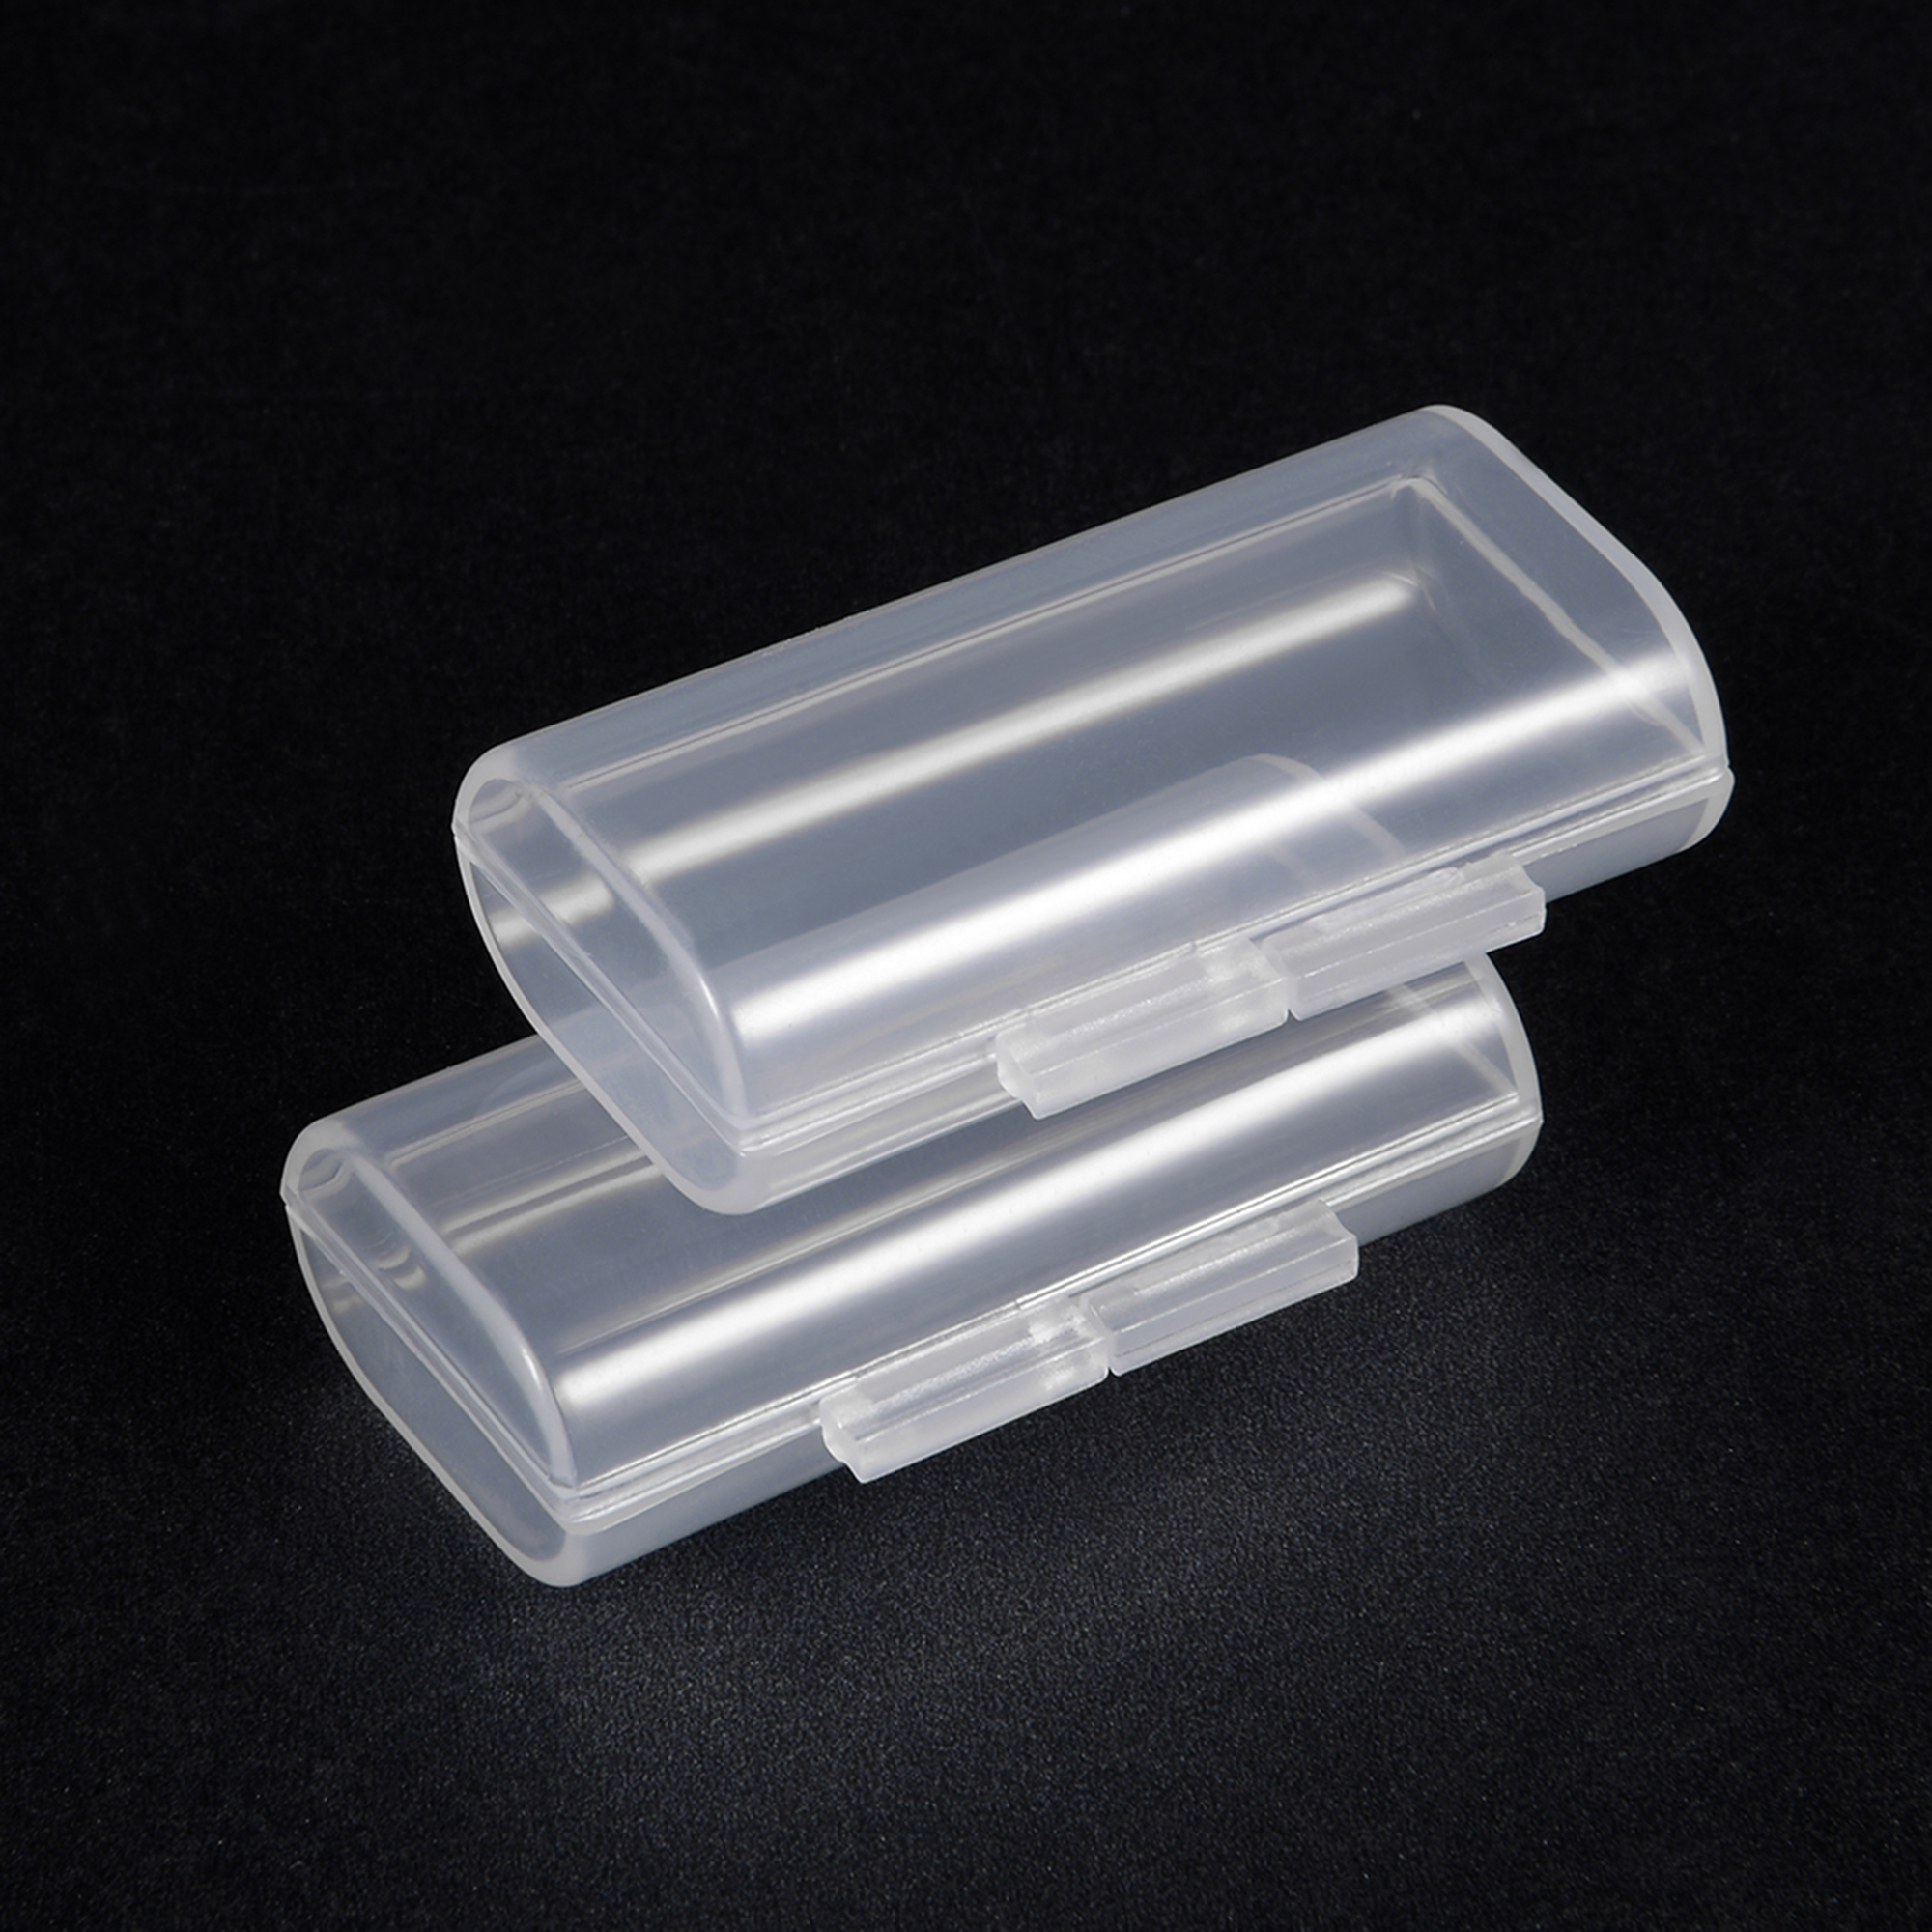 Battery Storage Case Holder Transparent For 2 x AAA Battery Capacity - image 3 de 5